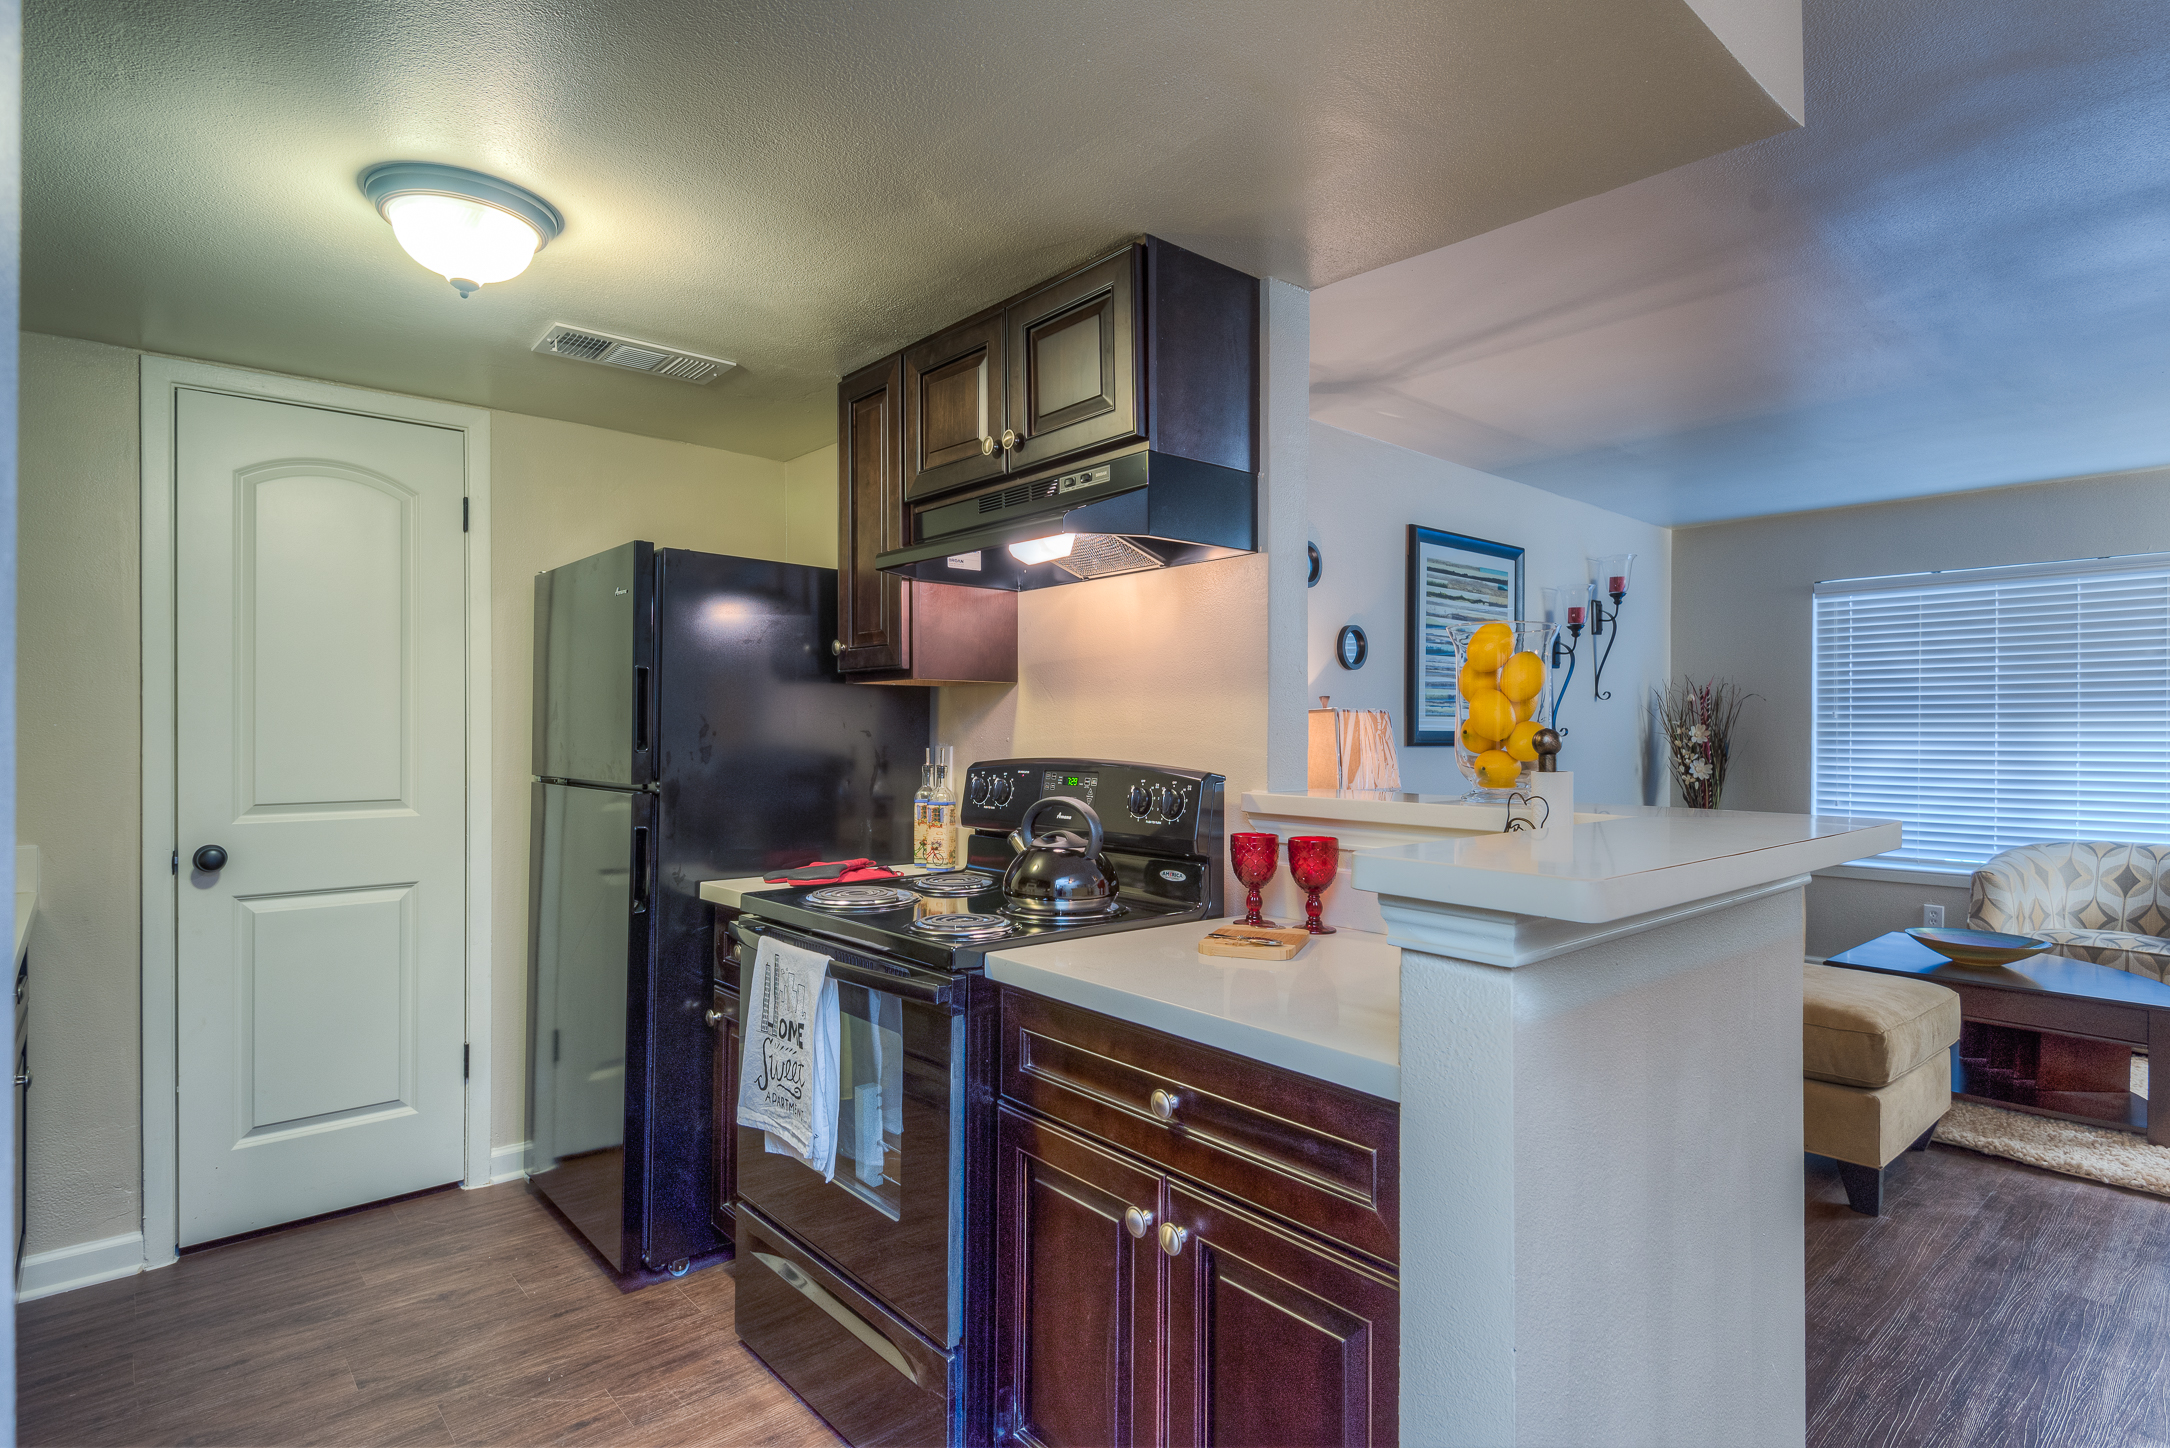 Apartments Near NHMCC Tomball Ranch for North Harris Montgomery Community College Students in The Woodlands, TX